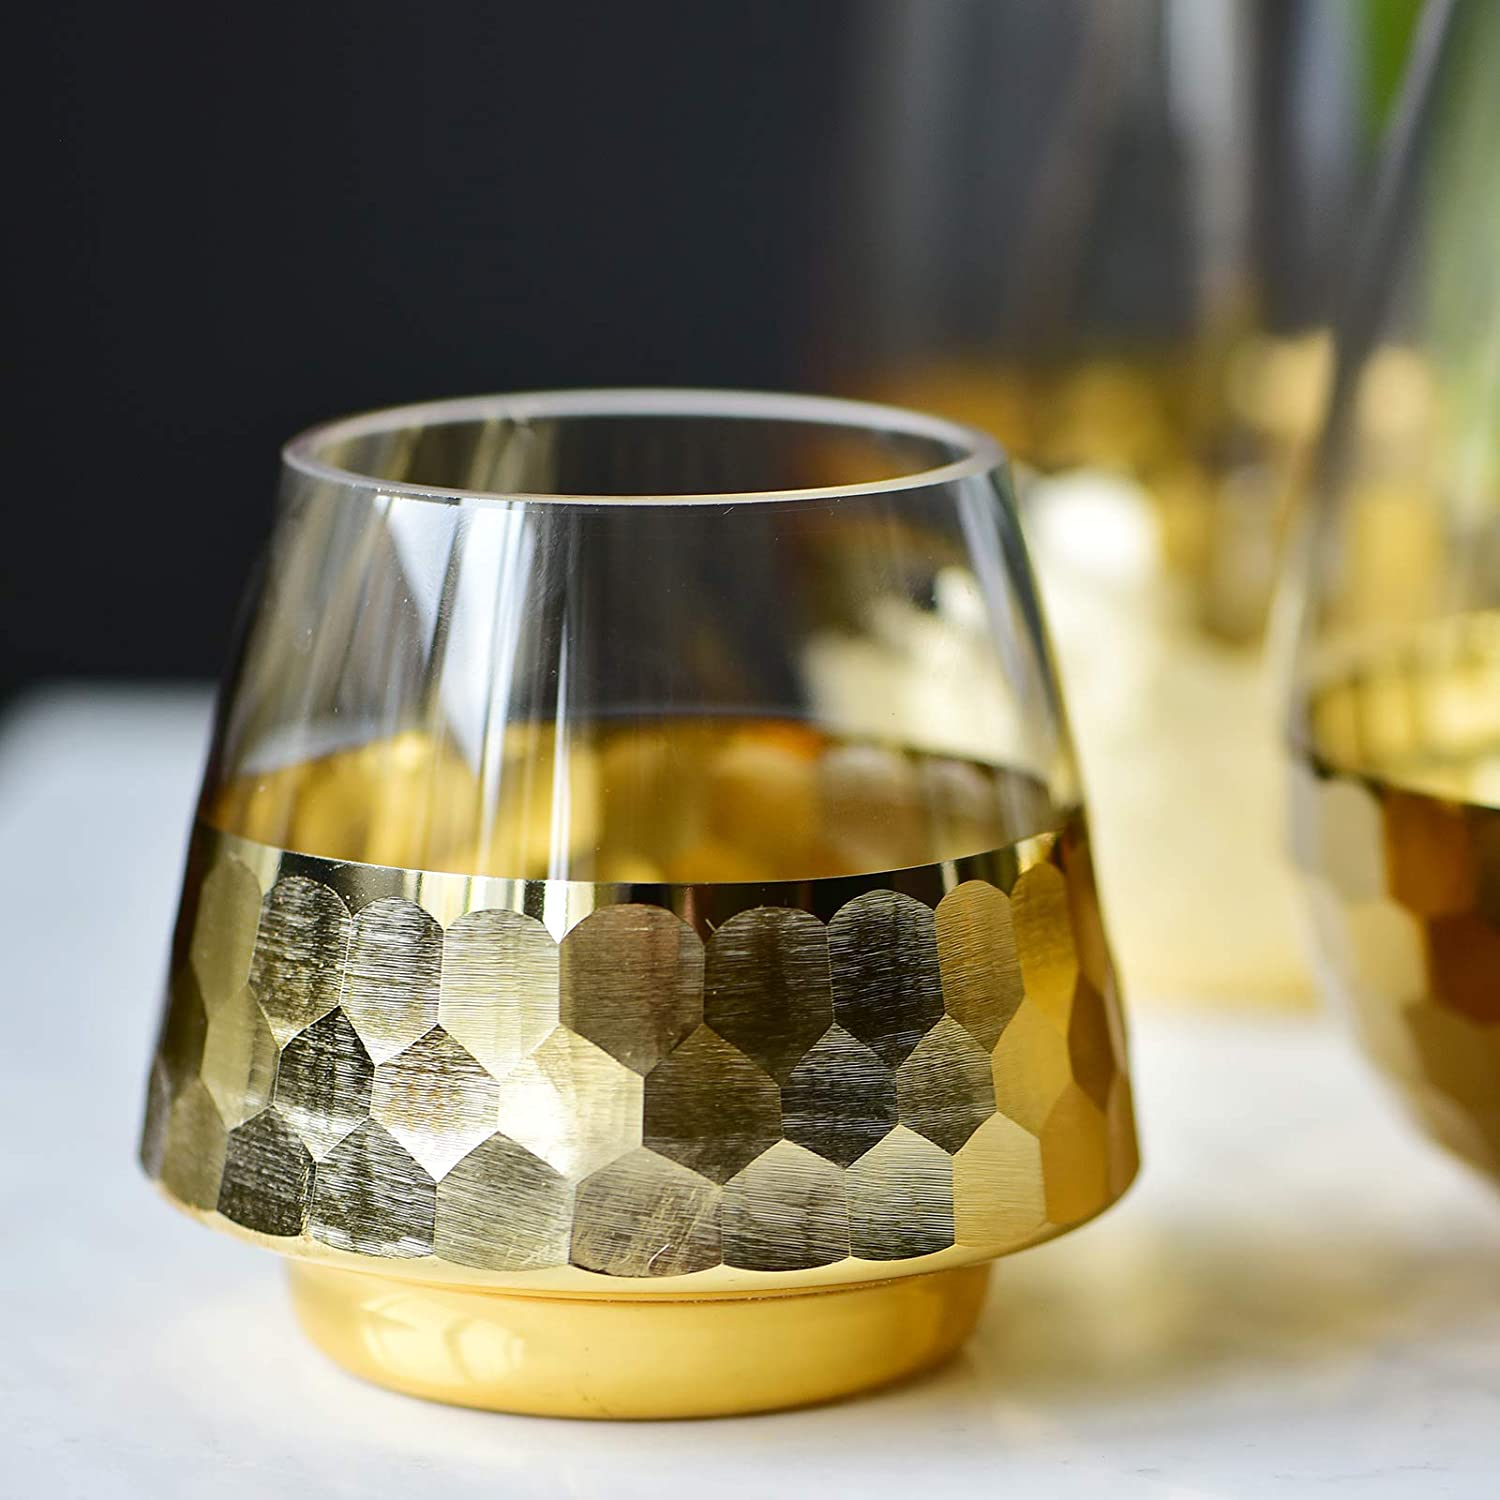 cyl home Hurricane Candleholders Clear Glass with Golden Honeycomb Decor Dining Table Centerpieces Bowl Tea Light Holders Gifts for Wedding Housewarming Christmas Party,3.9'' H x 3.2'' D